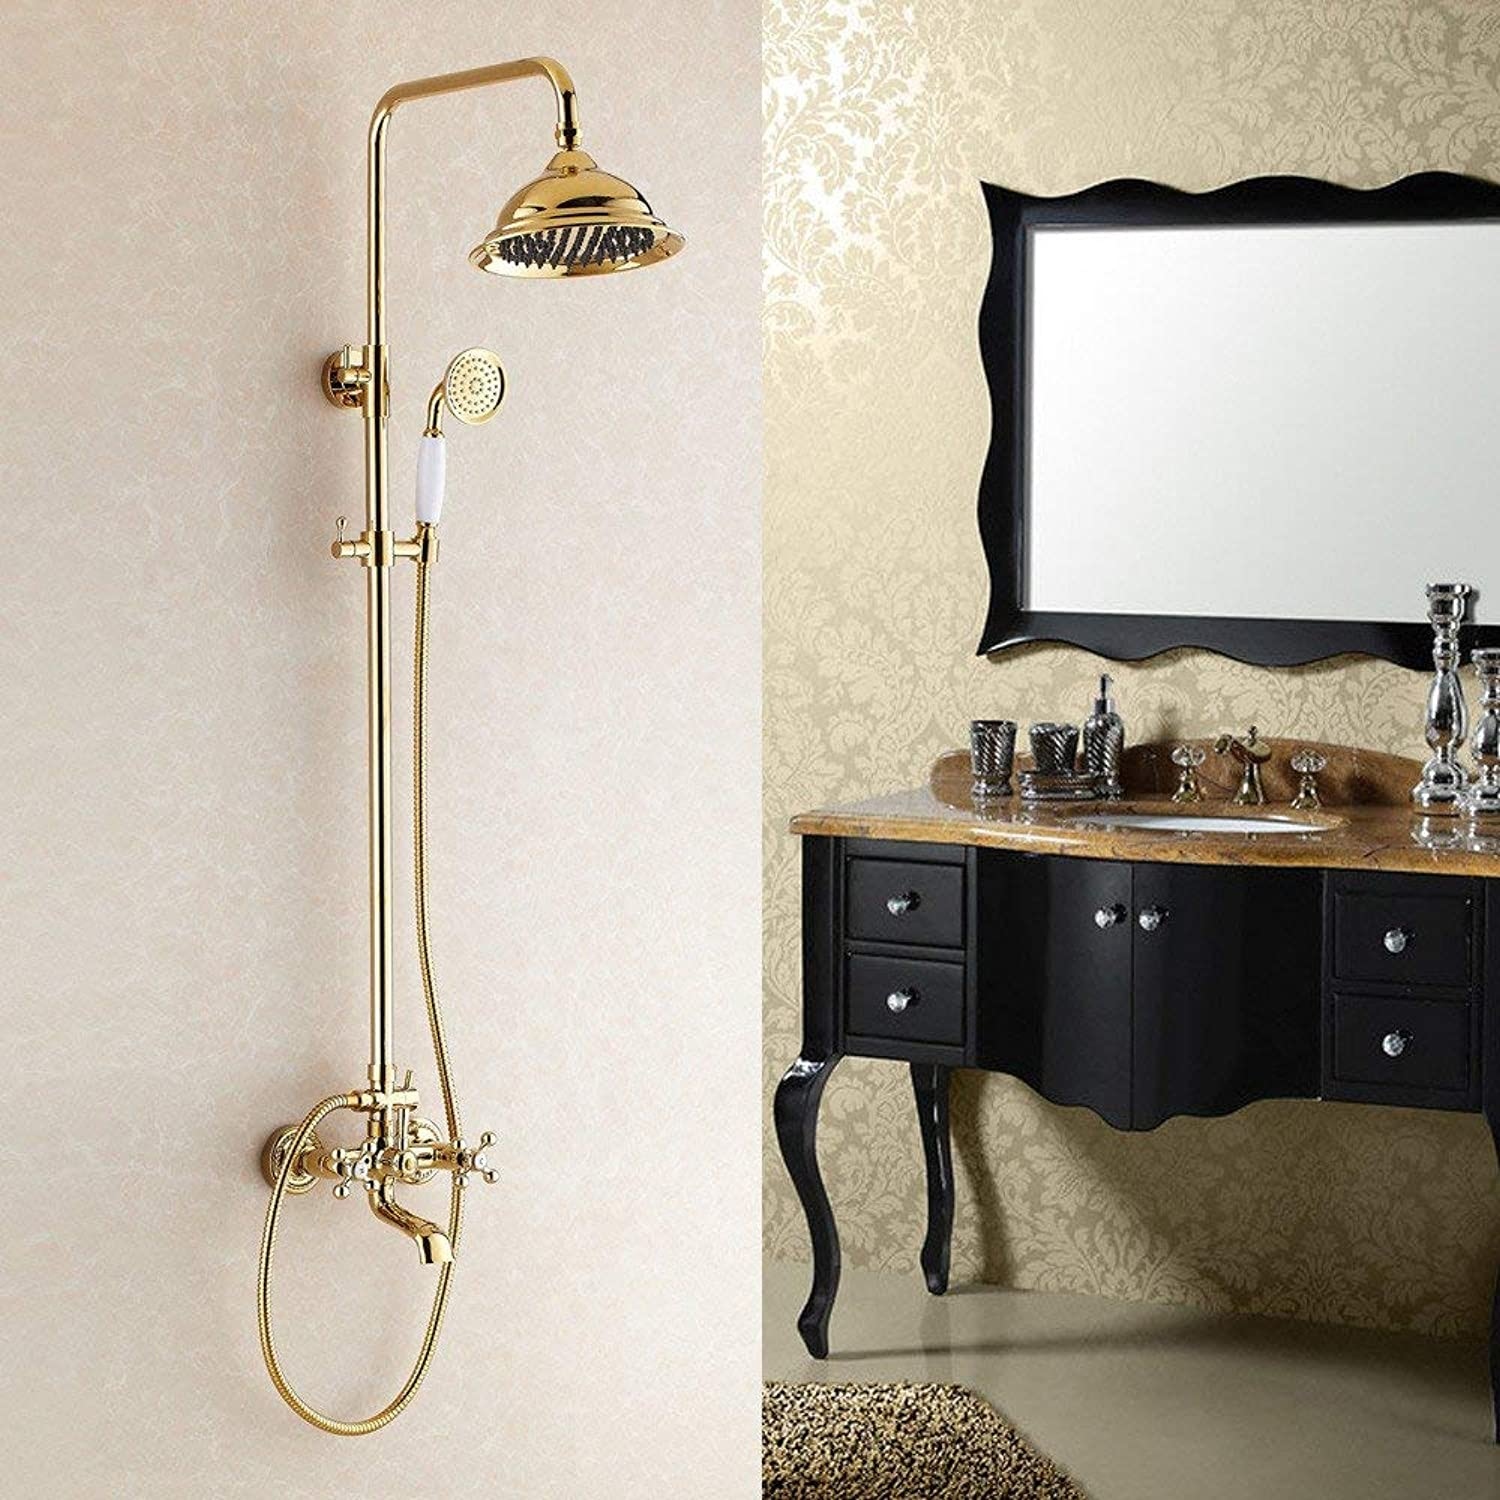 Elevator Lift Shower European Shower Respond to Double Handle Gilt with Cold of Shower Hot Water Tap Bath Bath to Hand